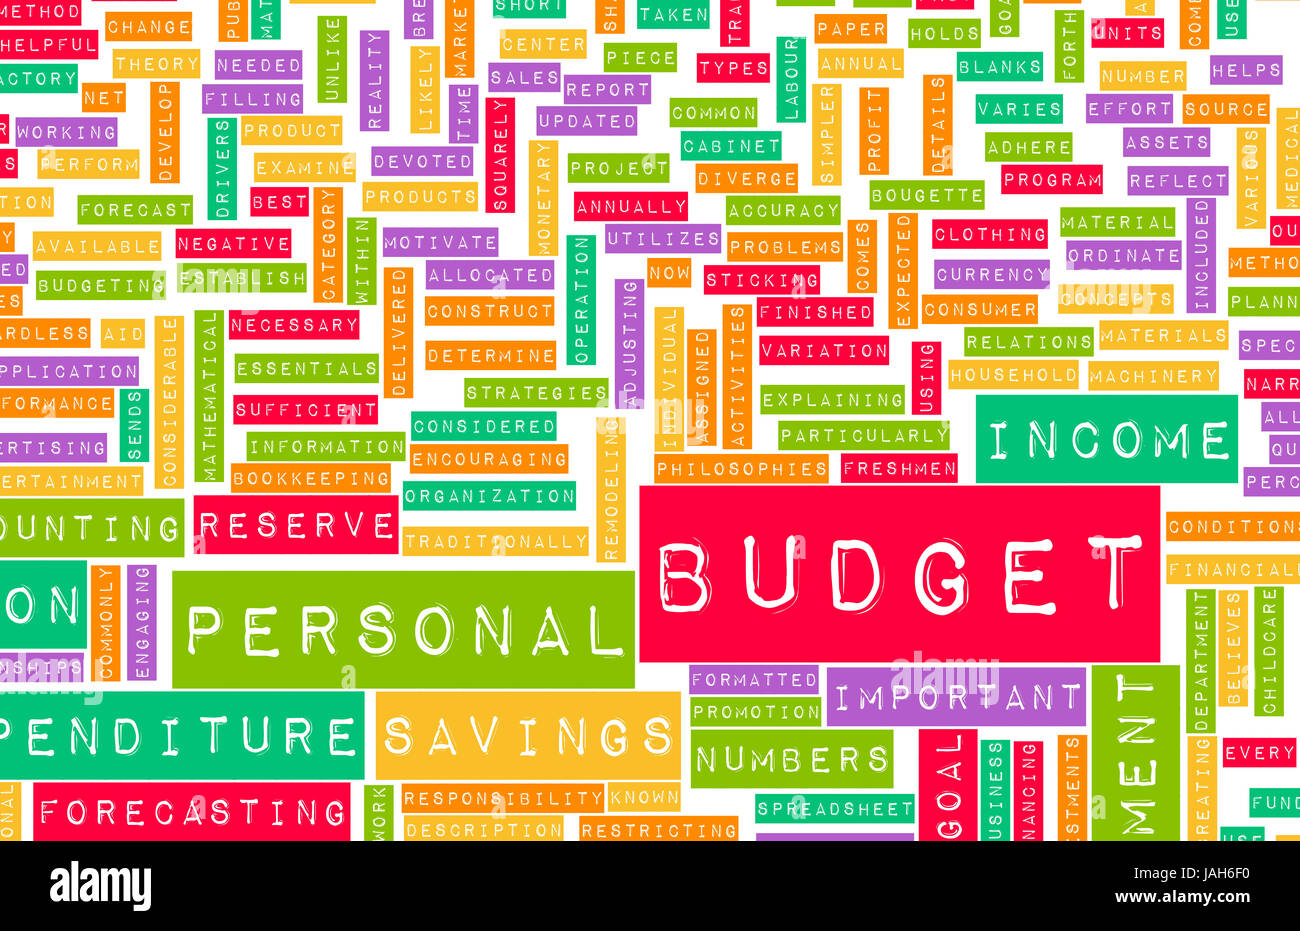 monthly budget plan income stock photos monthly budget plan income